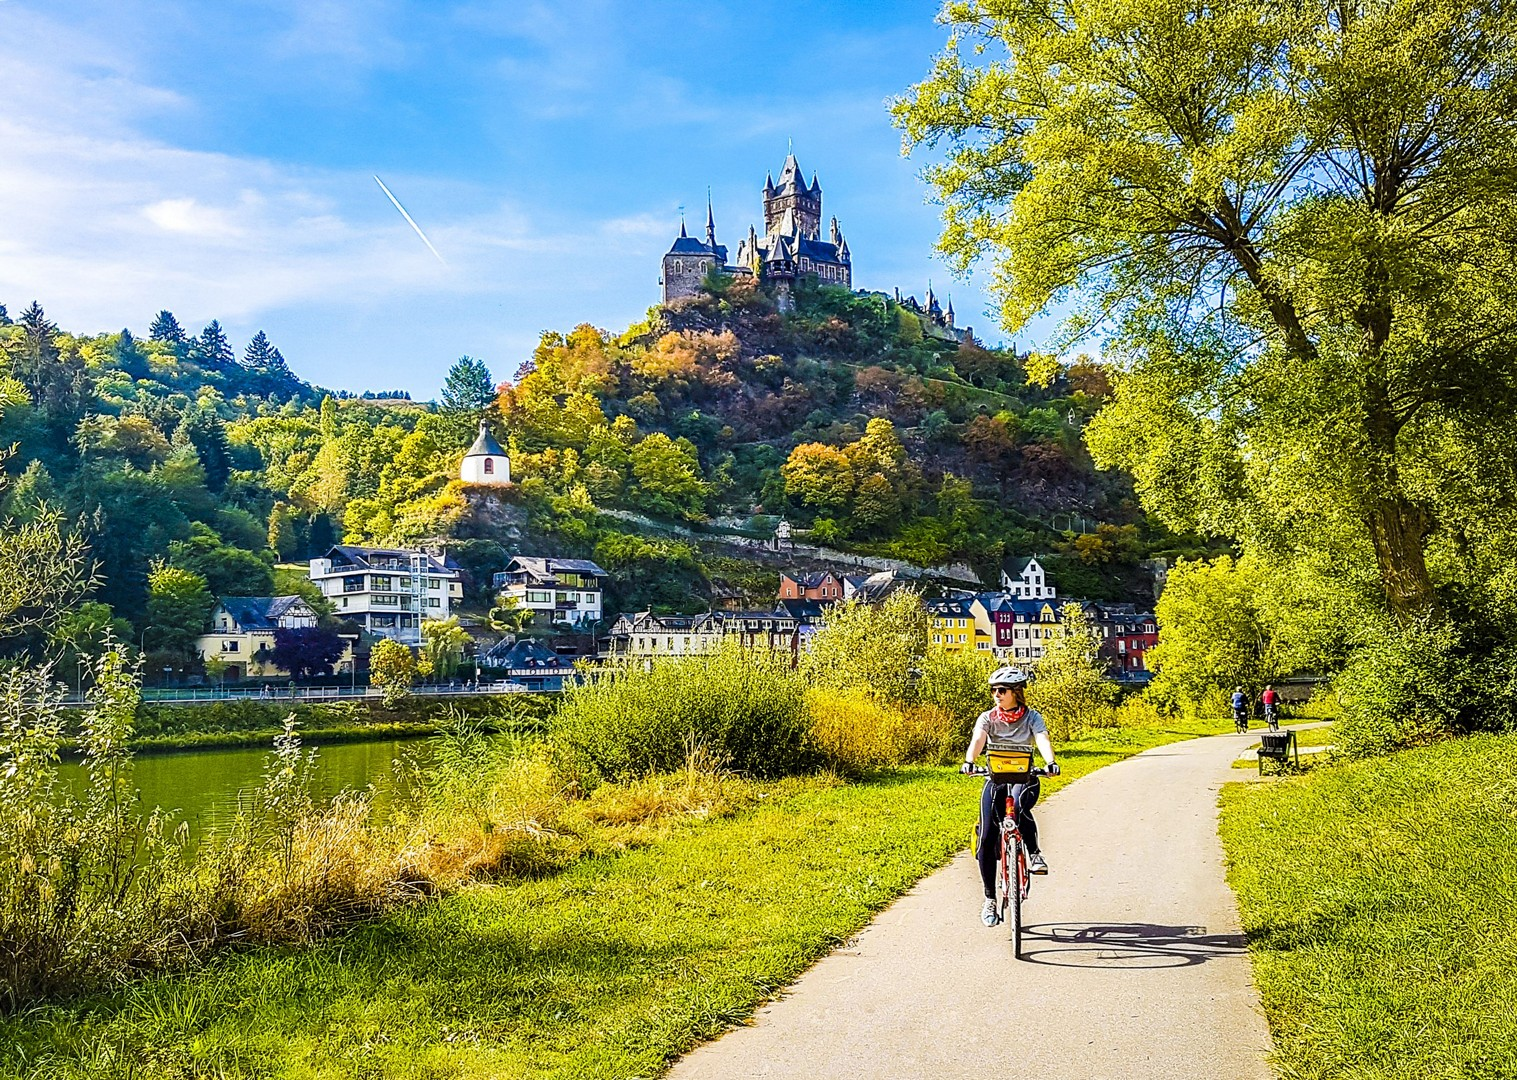 germany-moselle-valley-leisure-cycling-self-guided.jpg - Germany - Moselle Valley - Self-Guided Leisure Cycling Holiday - Leisure Cycling